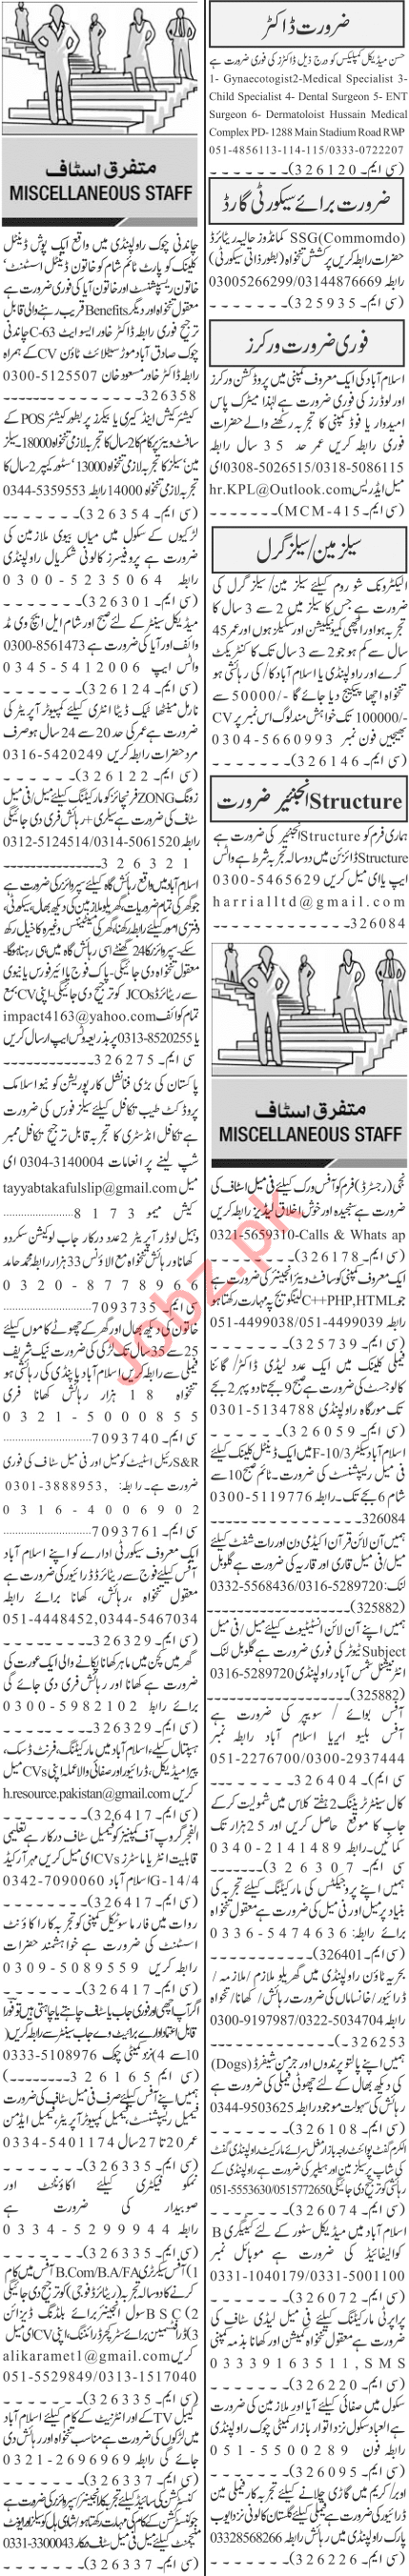 Jang Sunday Classified Ads 24 Jan 2021 for Office Staff